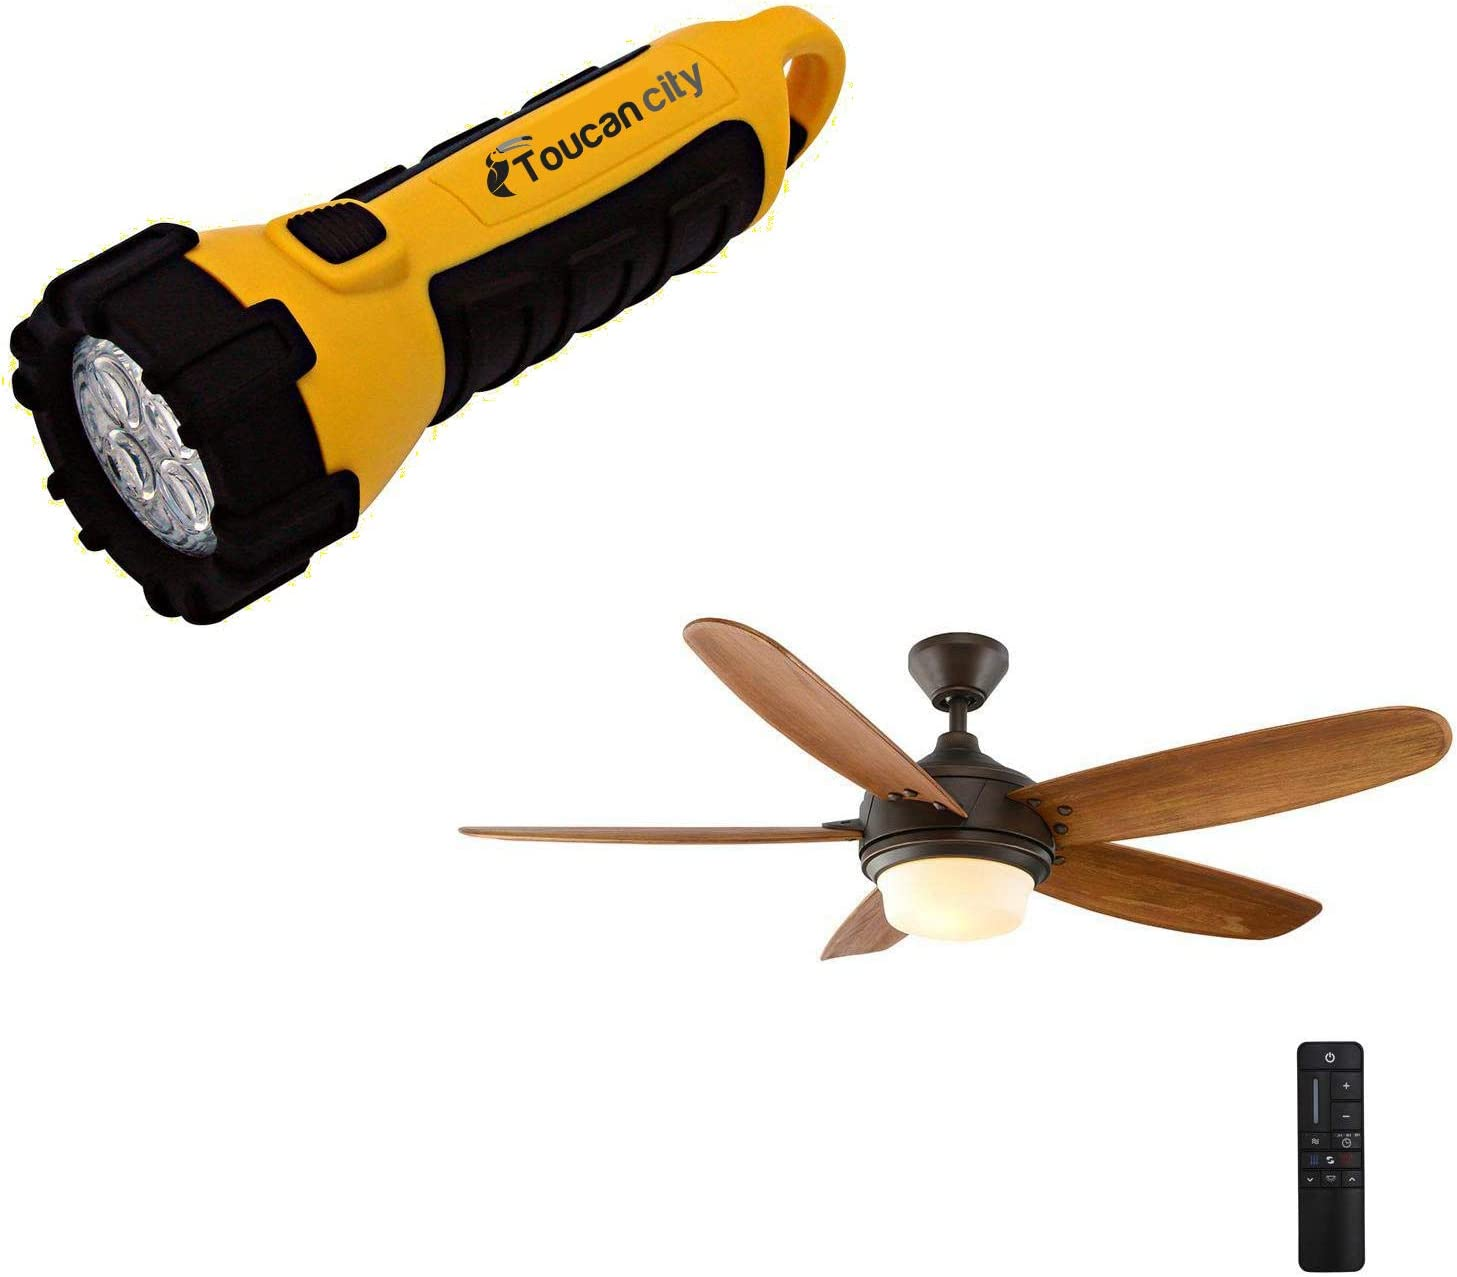 Toucan City LED Flashlight and Home Decorators Collection Breezemore 56 in. LED Indoor Mediterranean Bronze Ceiling Fan with Light Kit and Remote Control 51556